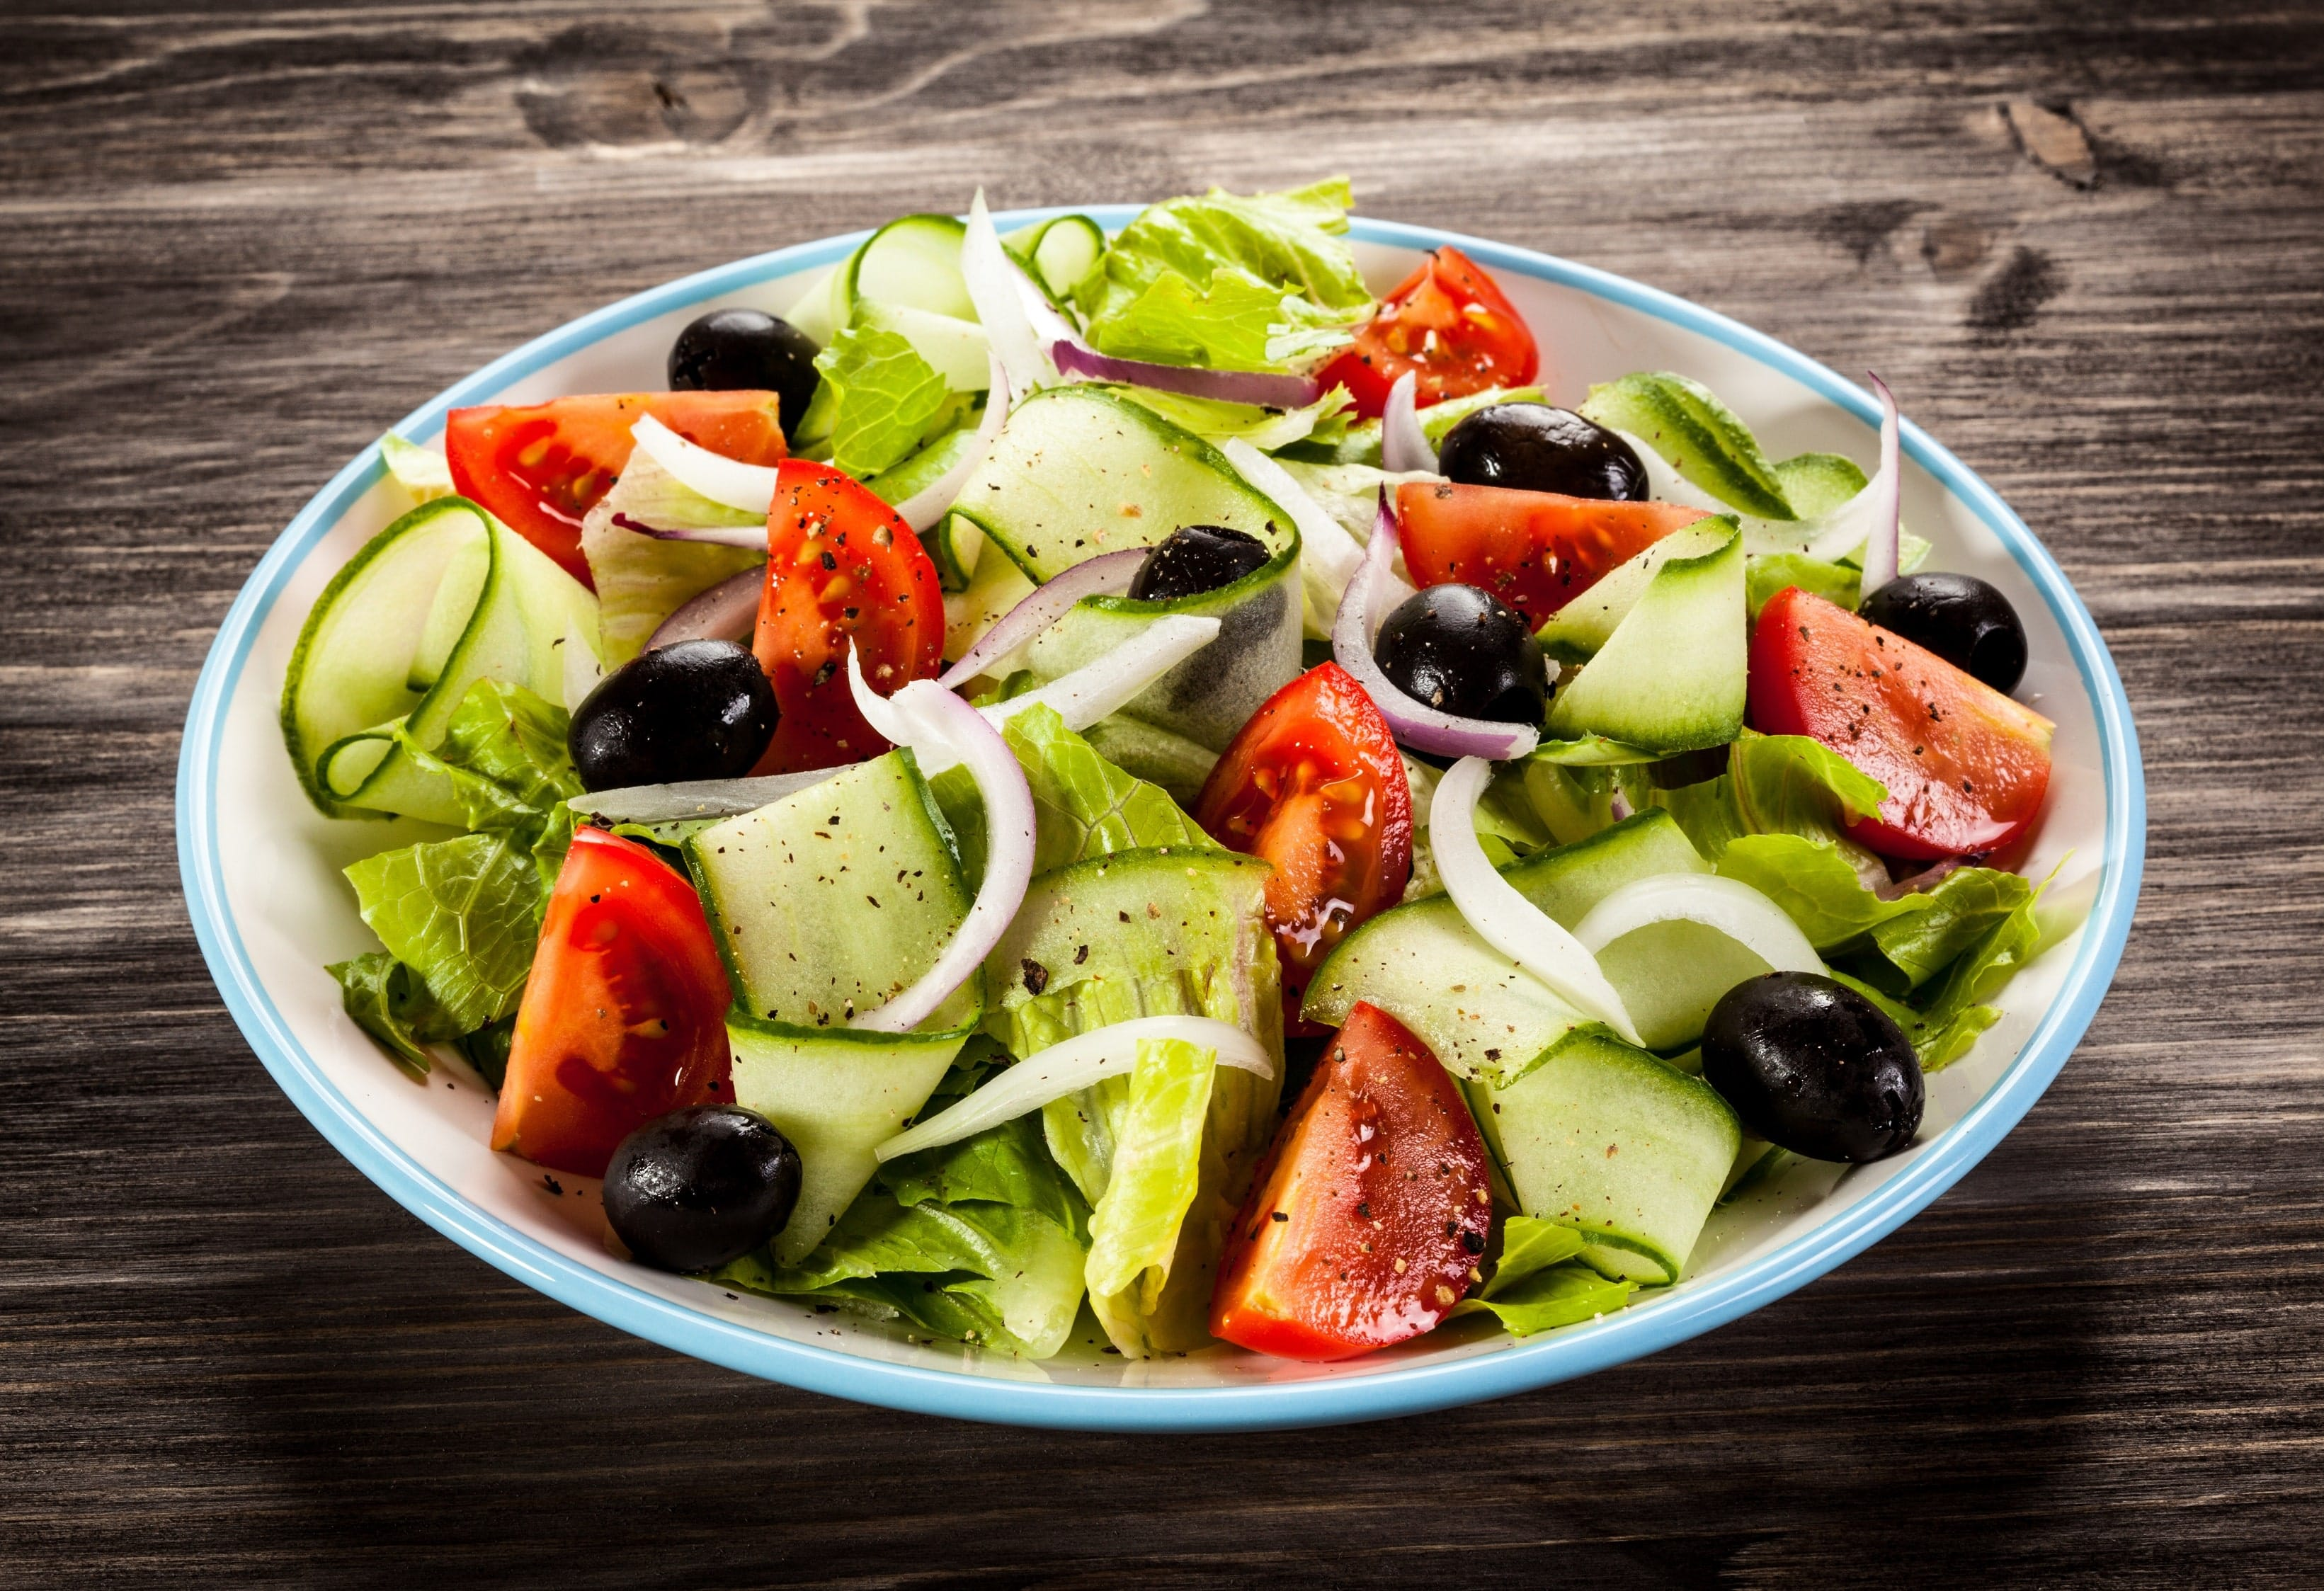 light and refreshing salad with delicious Greek vinaigrette.